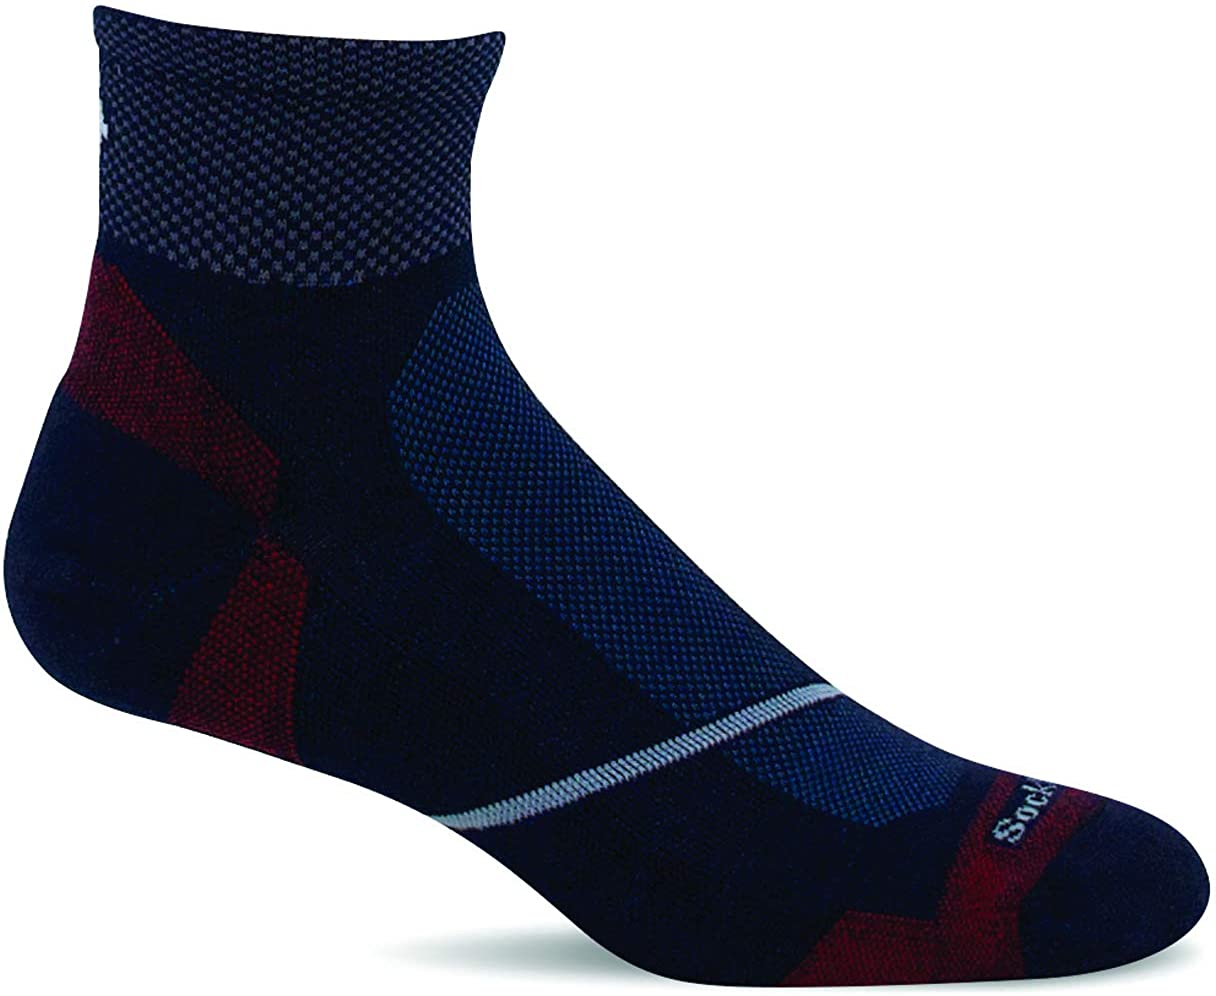 Sockwell Men's Pulse Quarter Firm Compression Sock in Navy from the side